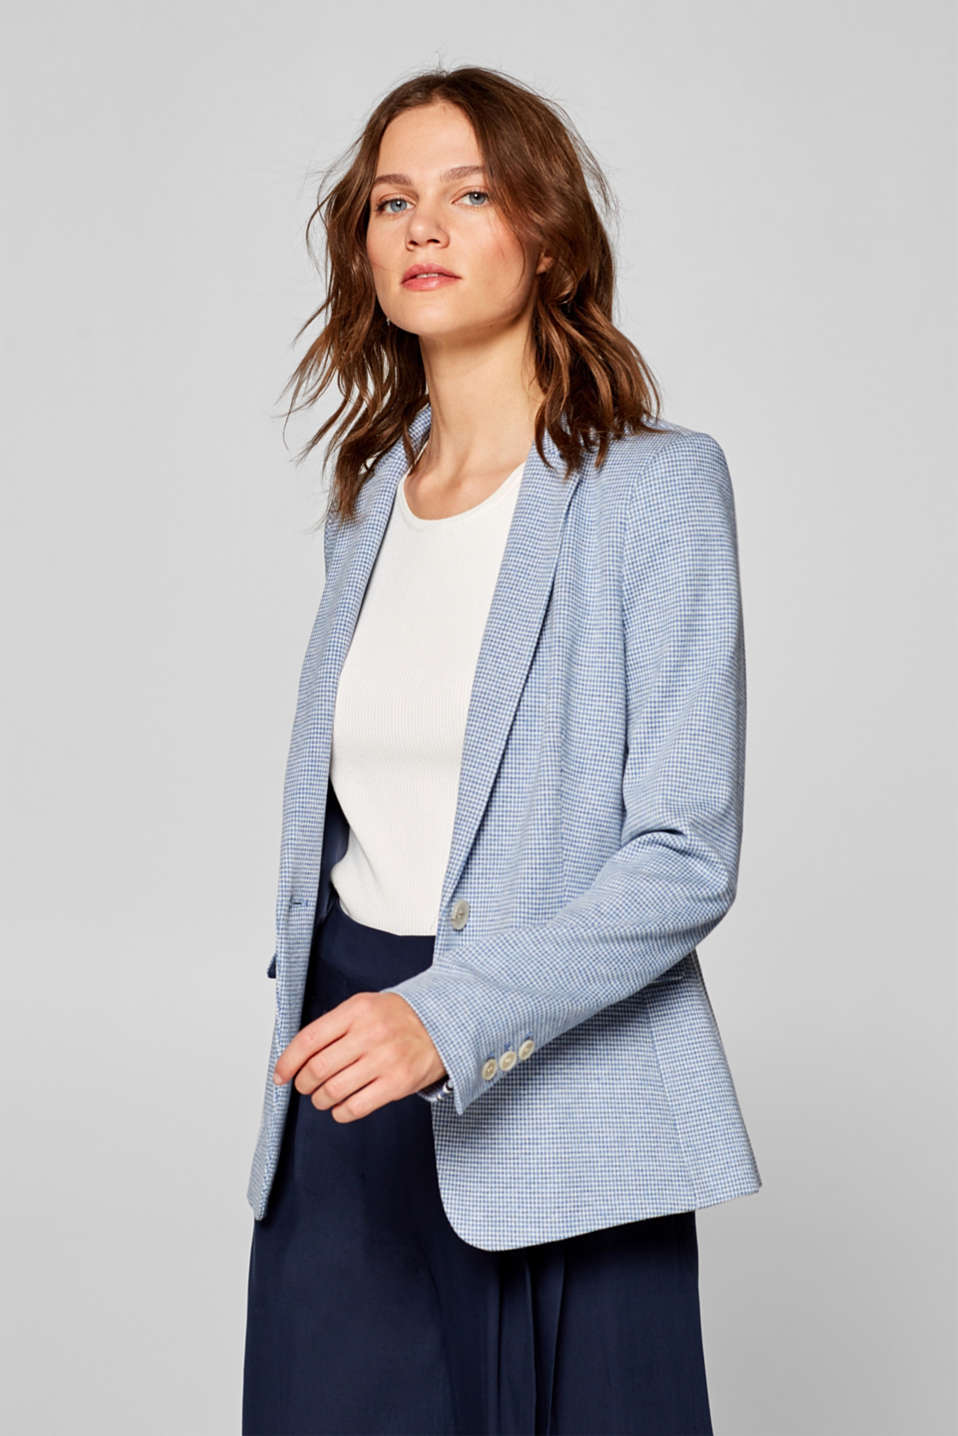 Esprit - Stretch jersey blazer with a houndstooth pattern